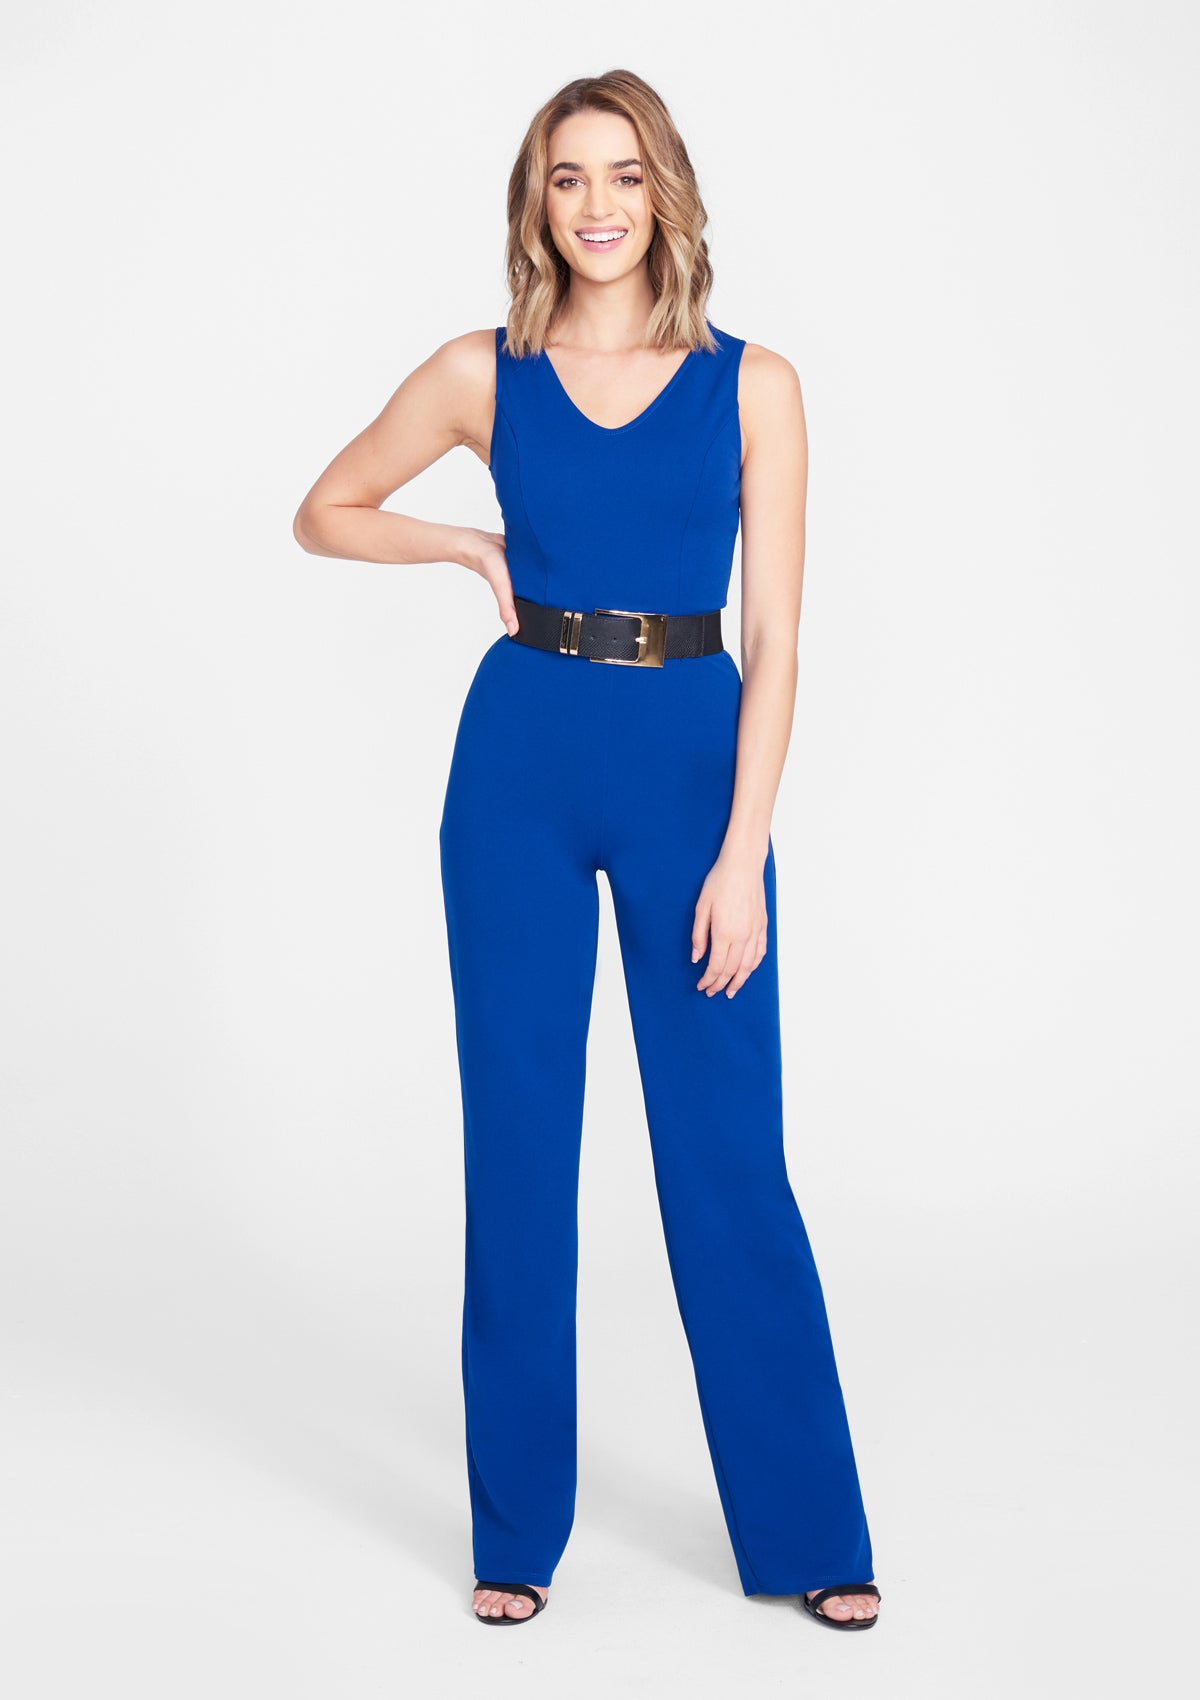 Alloy Apparel Tall Crepe Jumpsuit for Women in Royal Size M   Polyester